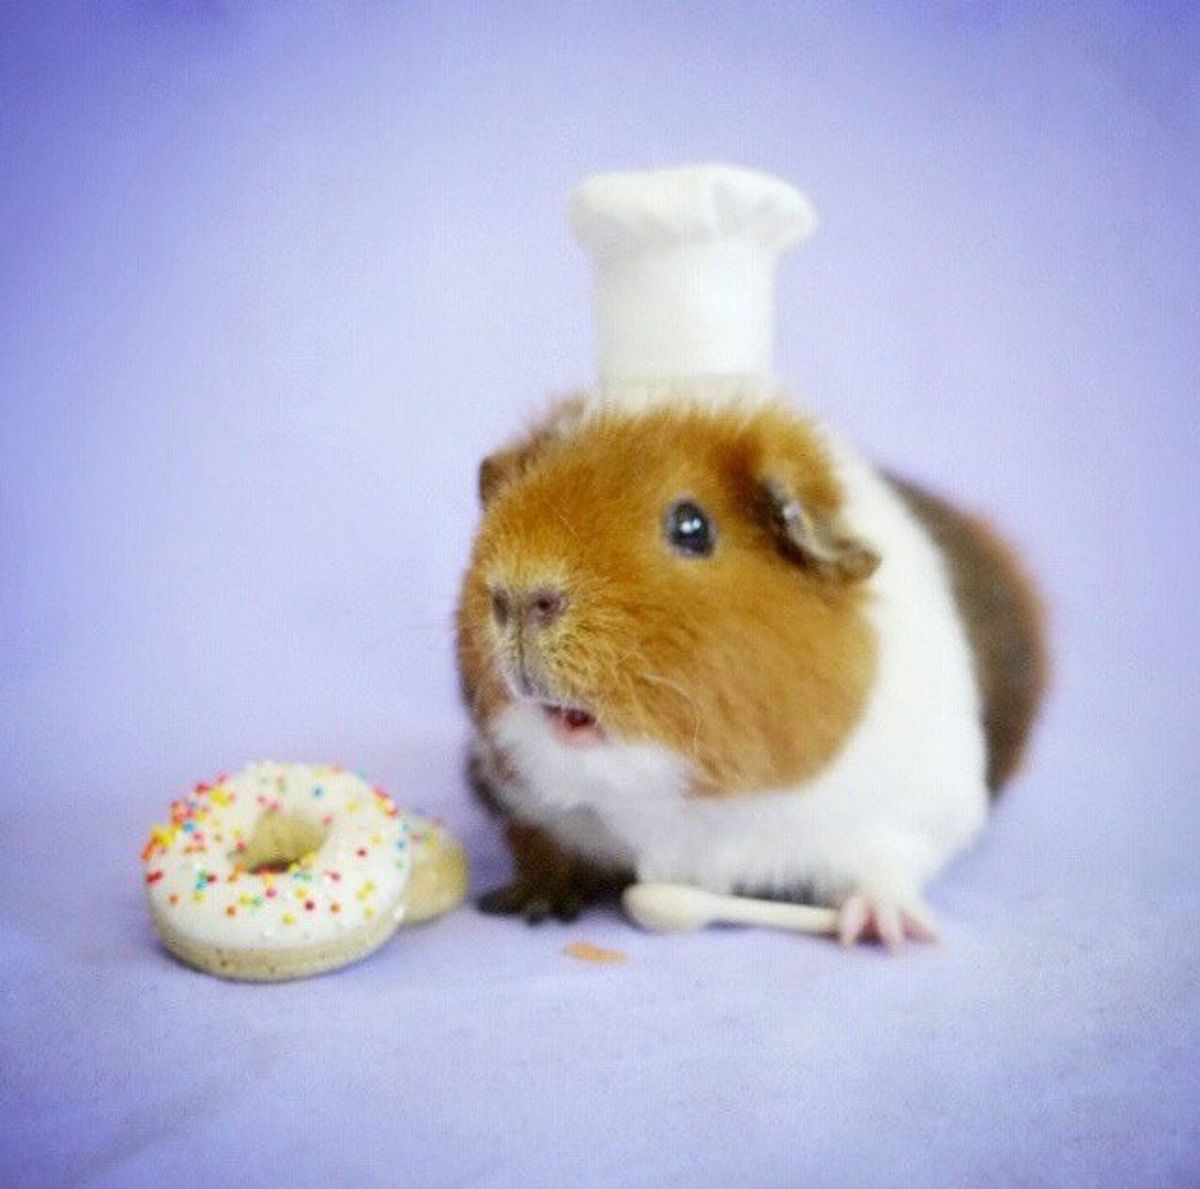 11 Reasons Guinea Pigs Are Adorable